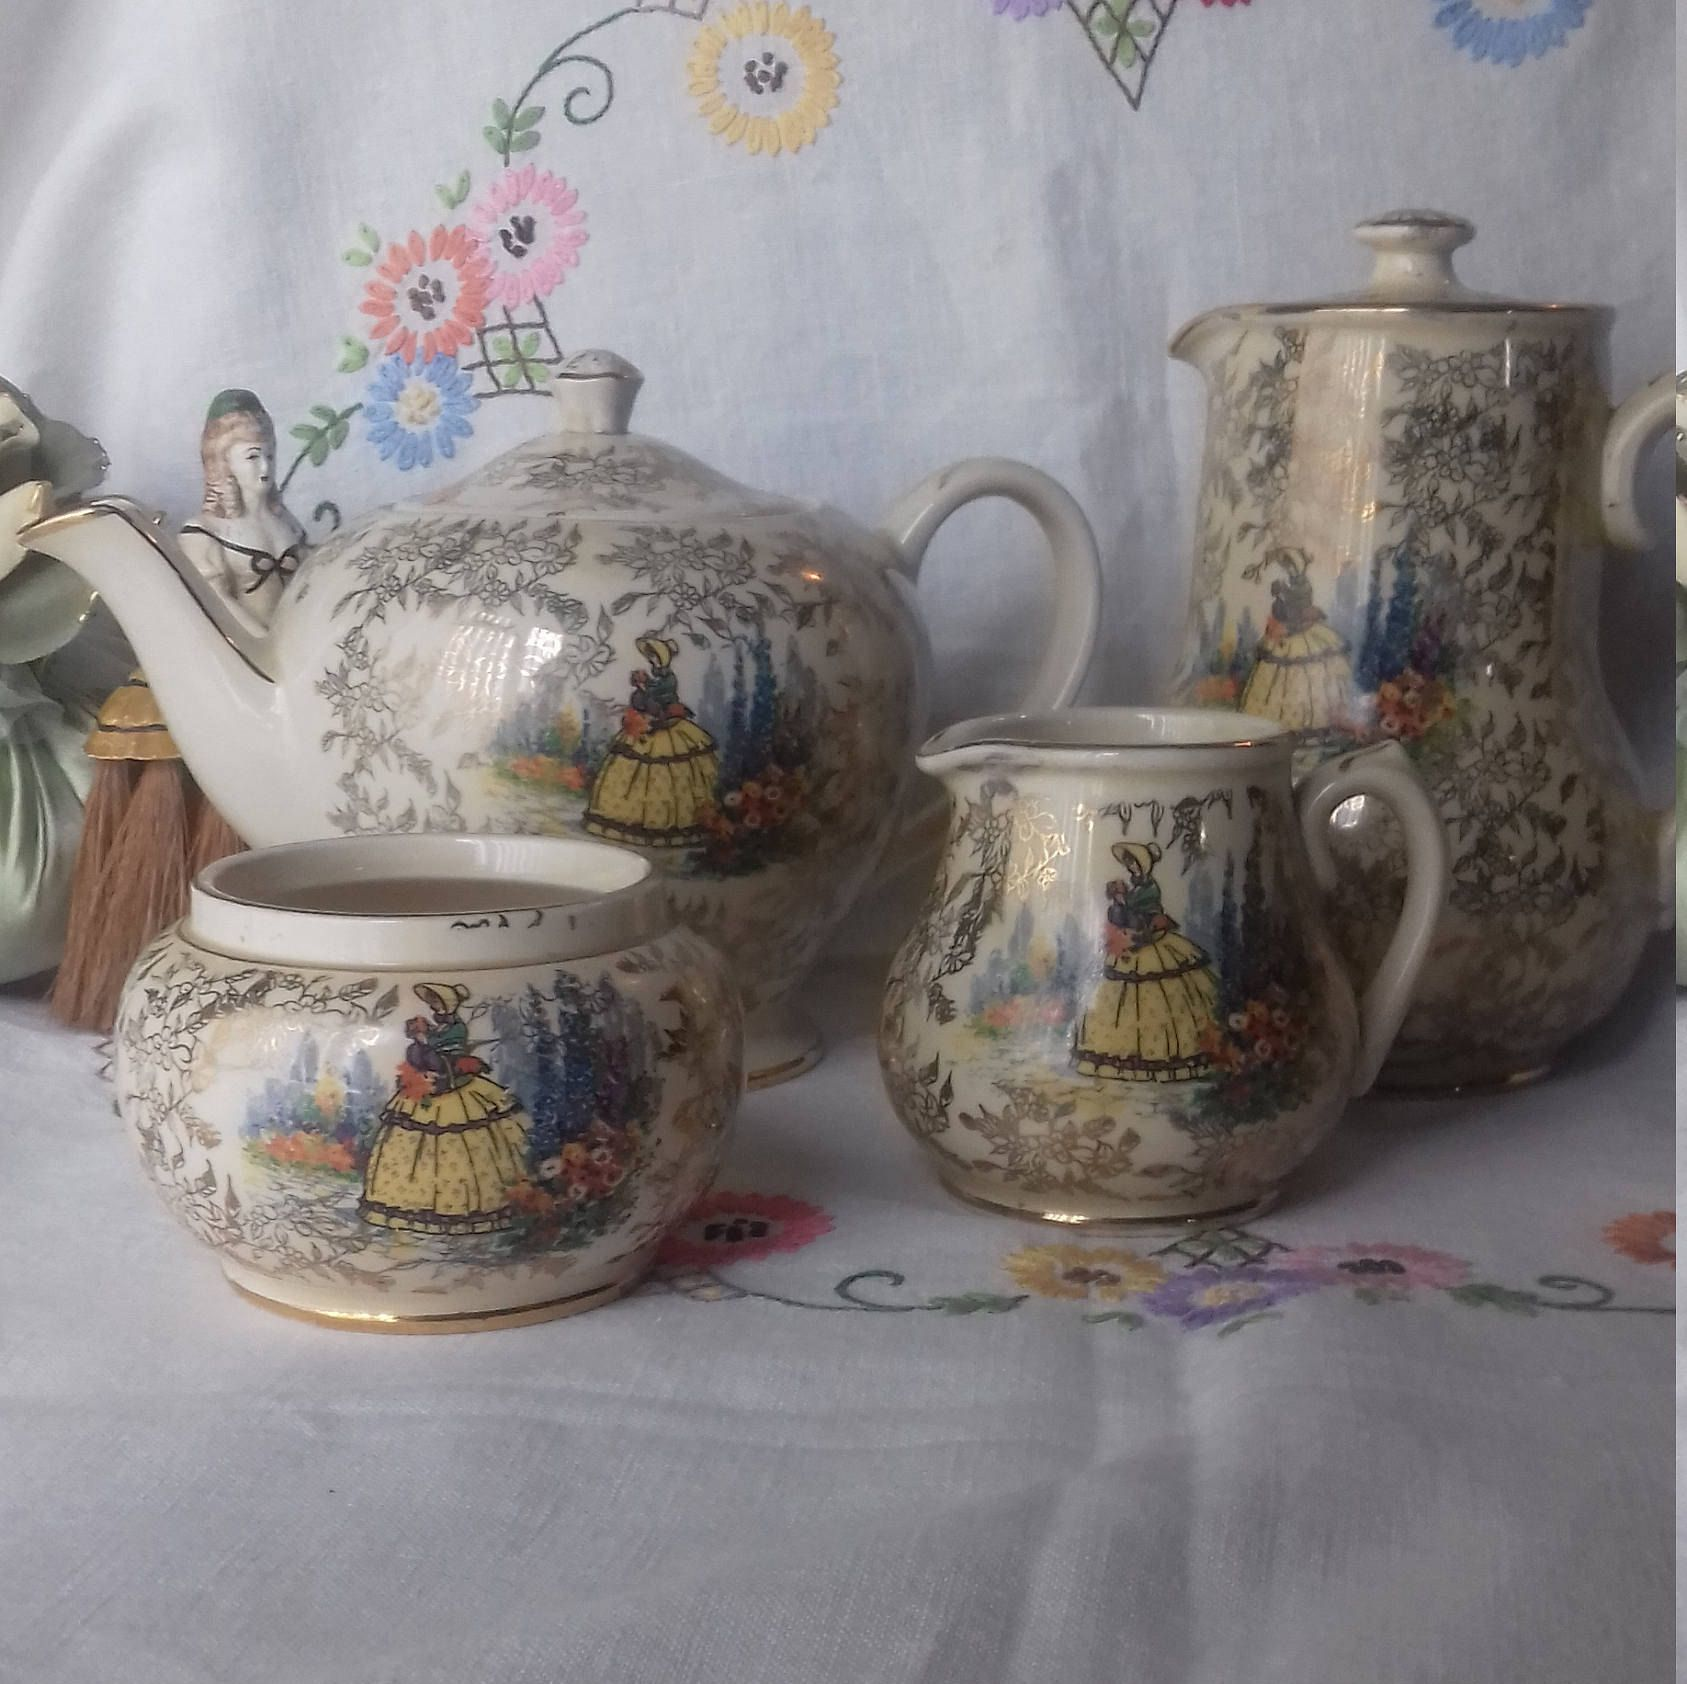 for sale / open to offers sadler teapot tea set coffee